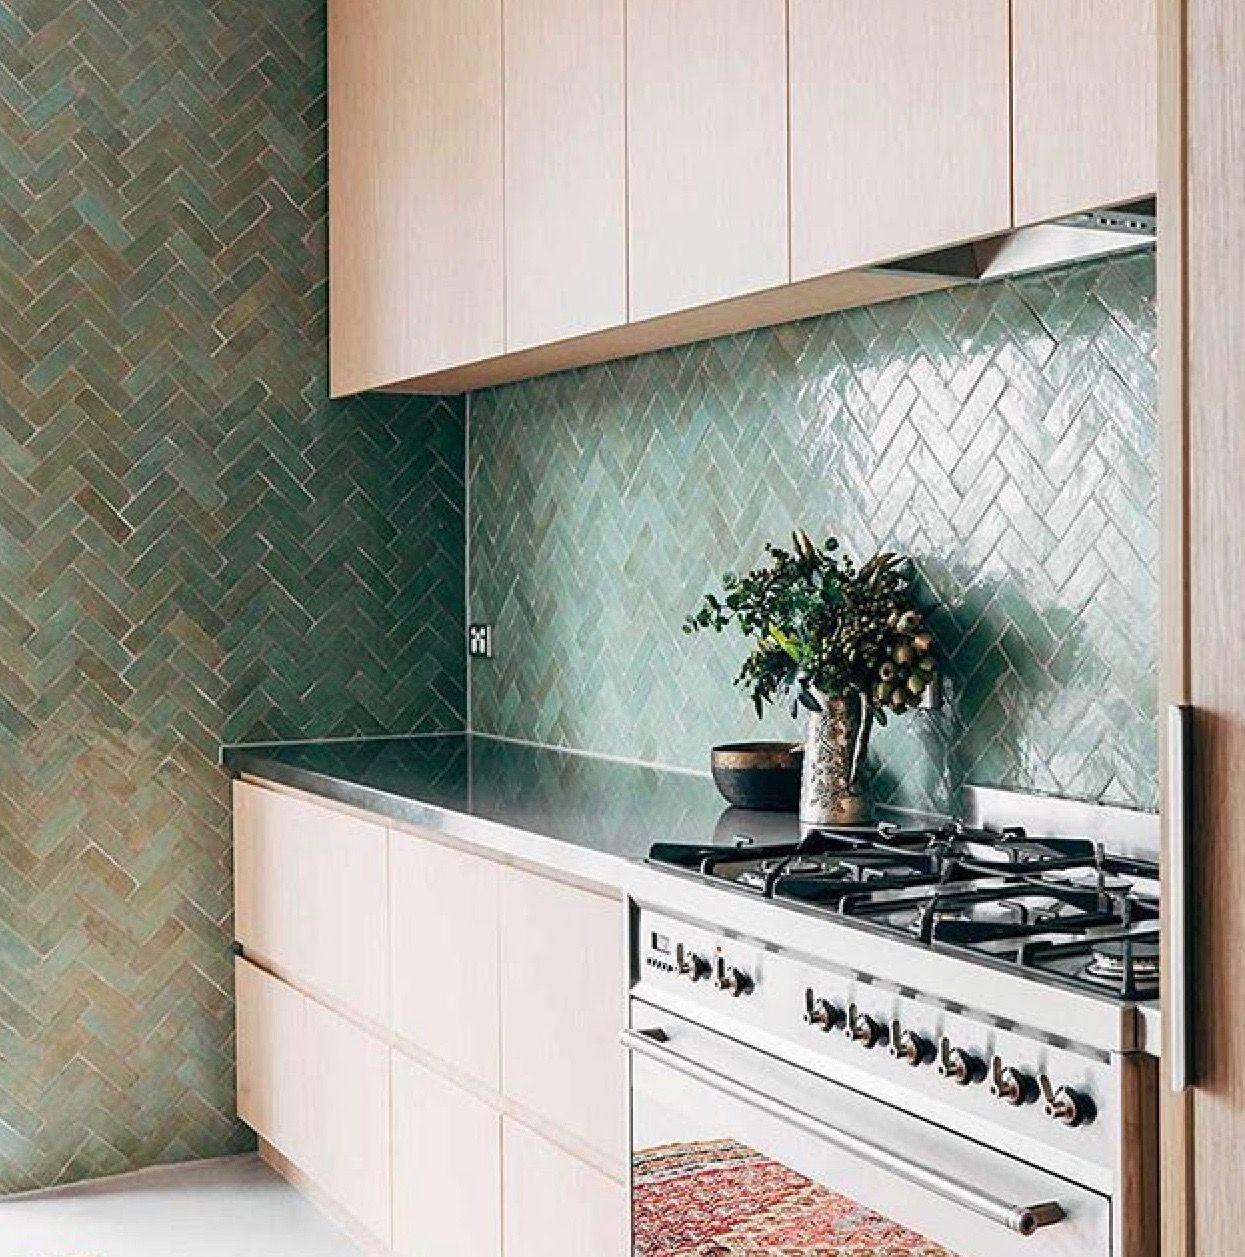 continuing the backsplash on the side wall | Kitchen | Pinterest ...